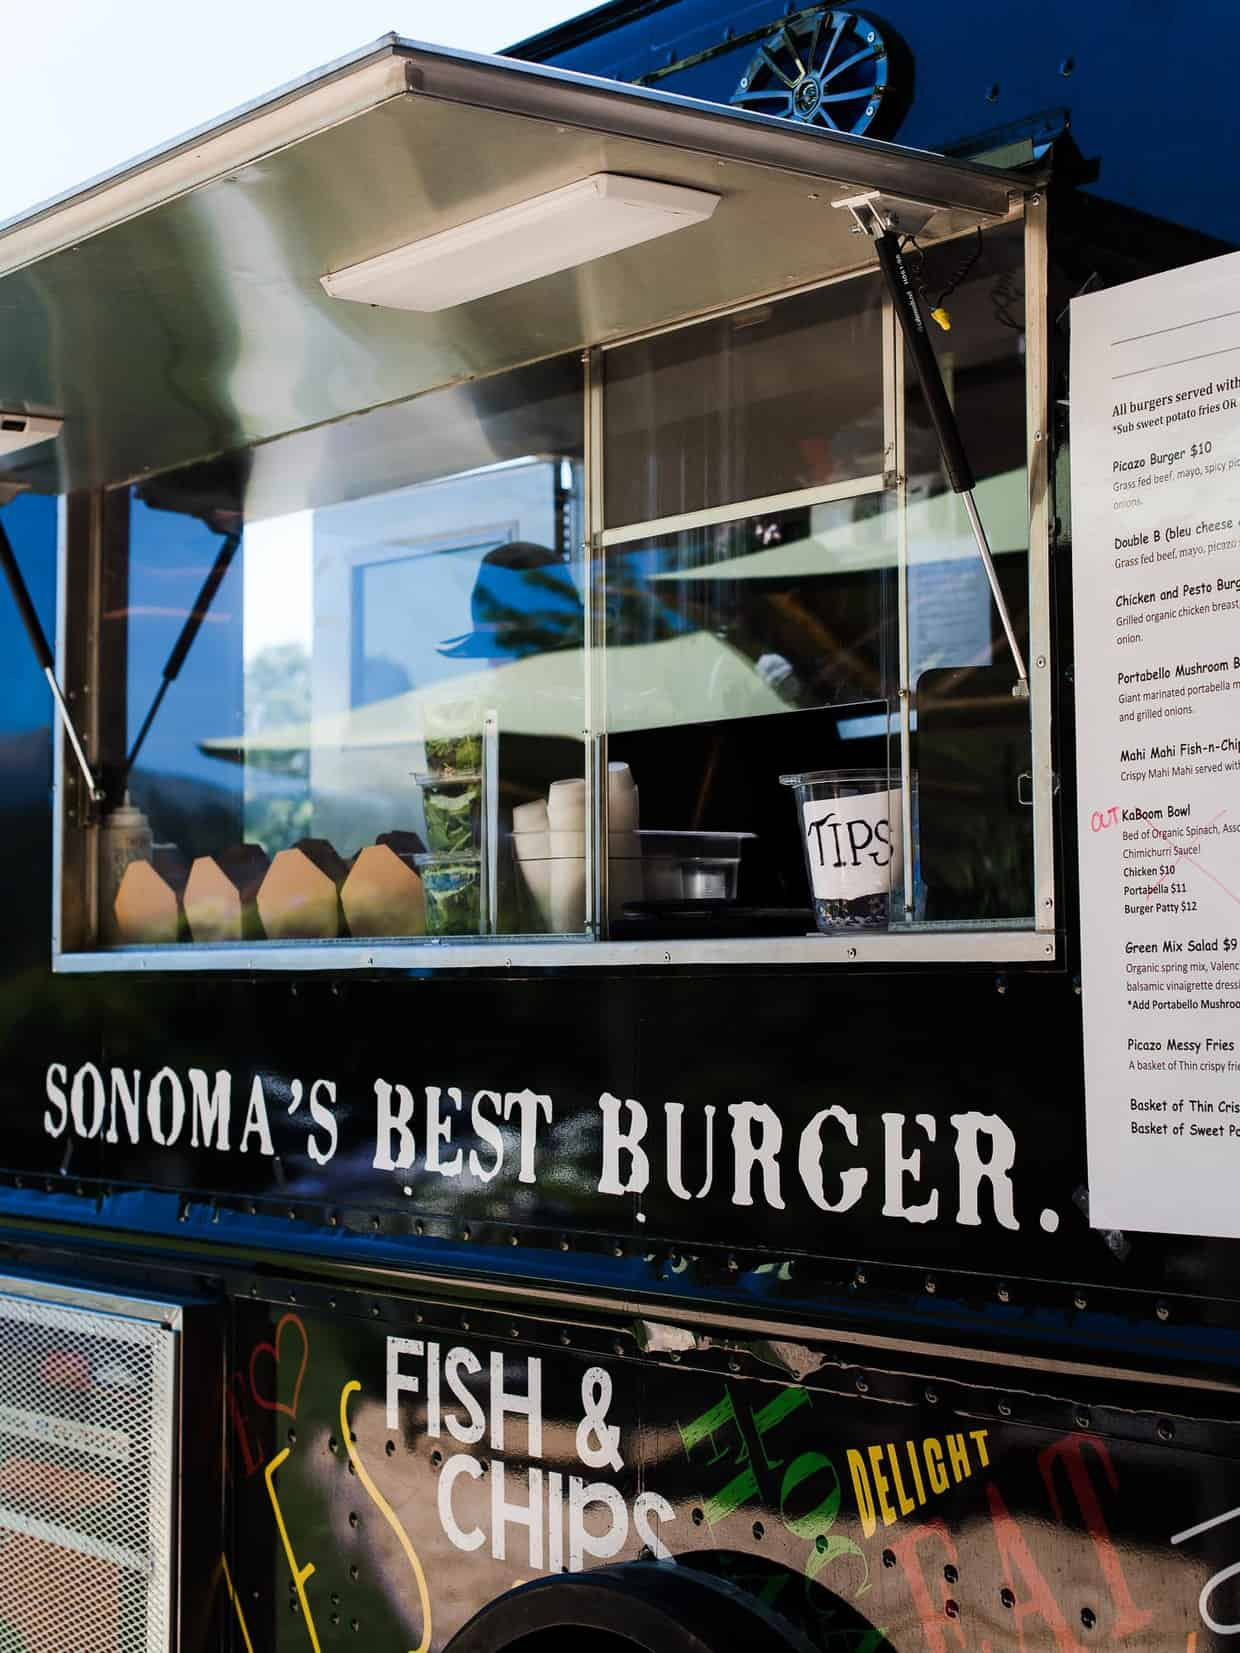 The order window of a food truck selling hamburgers.